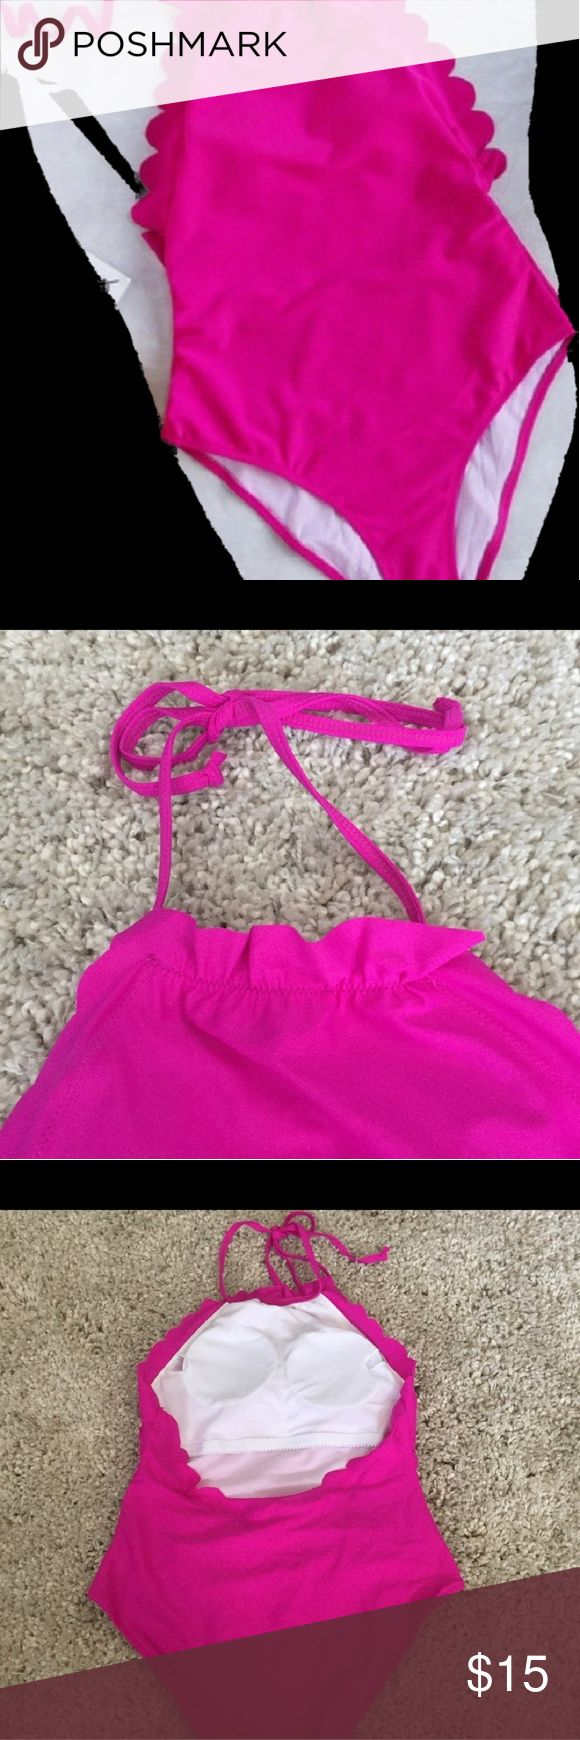 NEW Hot Pink scalloped one piece swimsuit New hot pink scalloped one piece with original packaging and liner didn't come with price tags this suit is the cutest one piece but it was too small on the top for me it has opened back detail and halter neck with removable cup pads waist: 14 inches across, hips: 16 in across, length without halter tie: 23 in Swim One Pieces